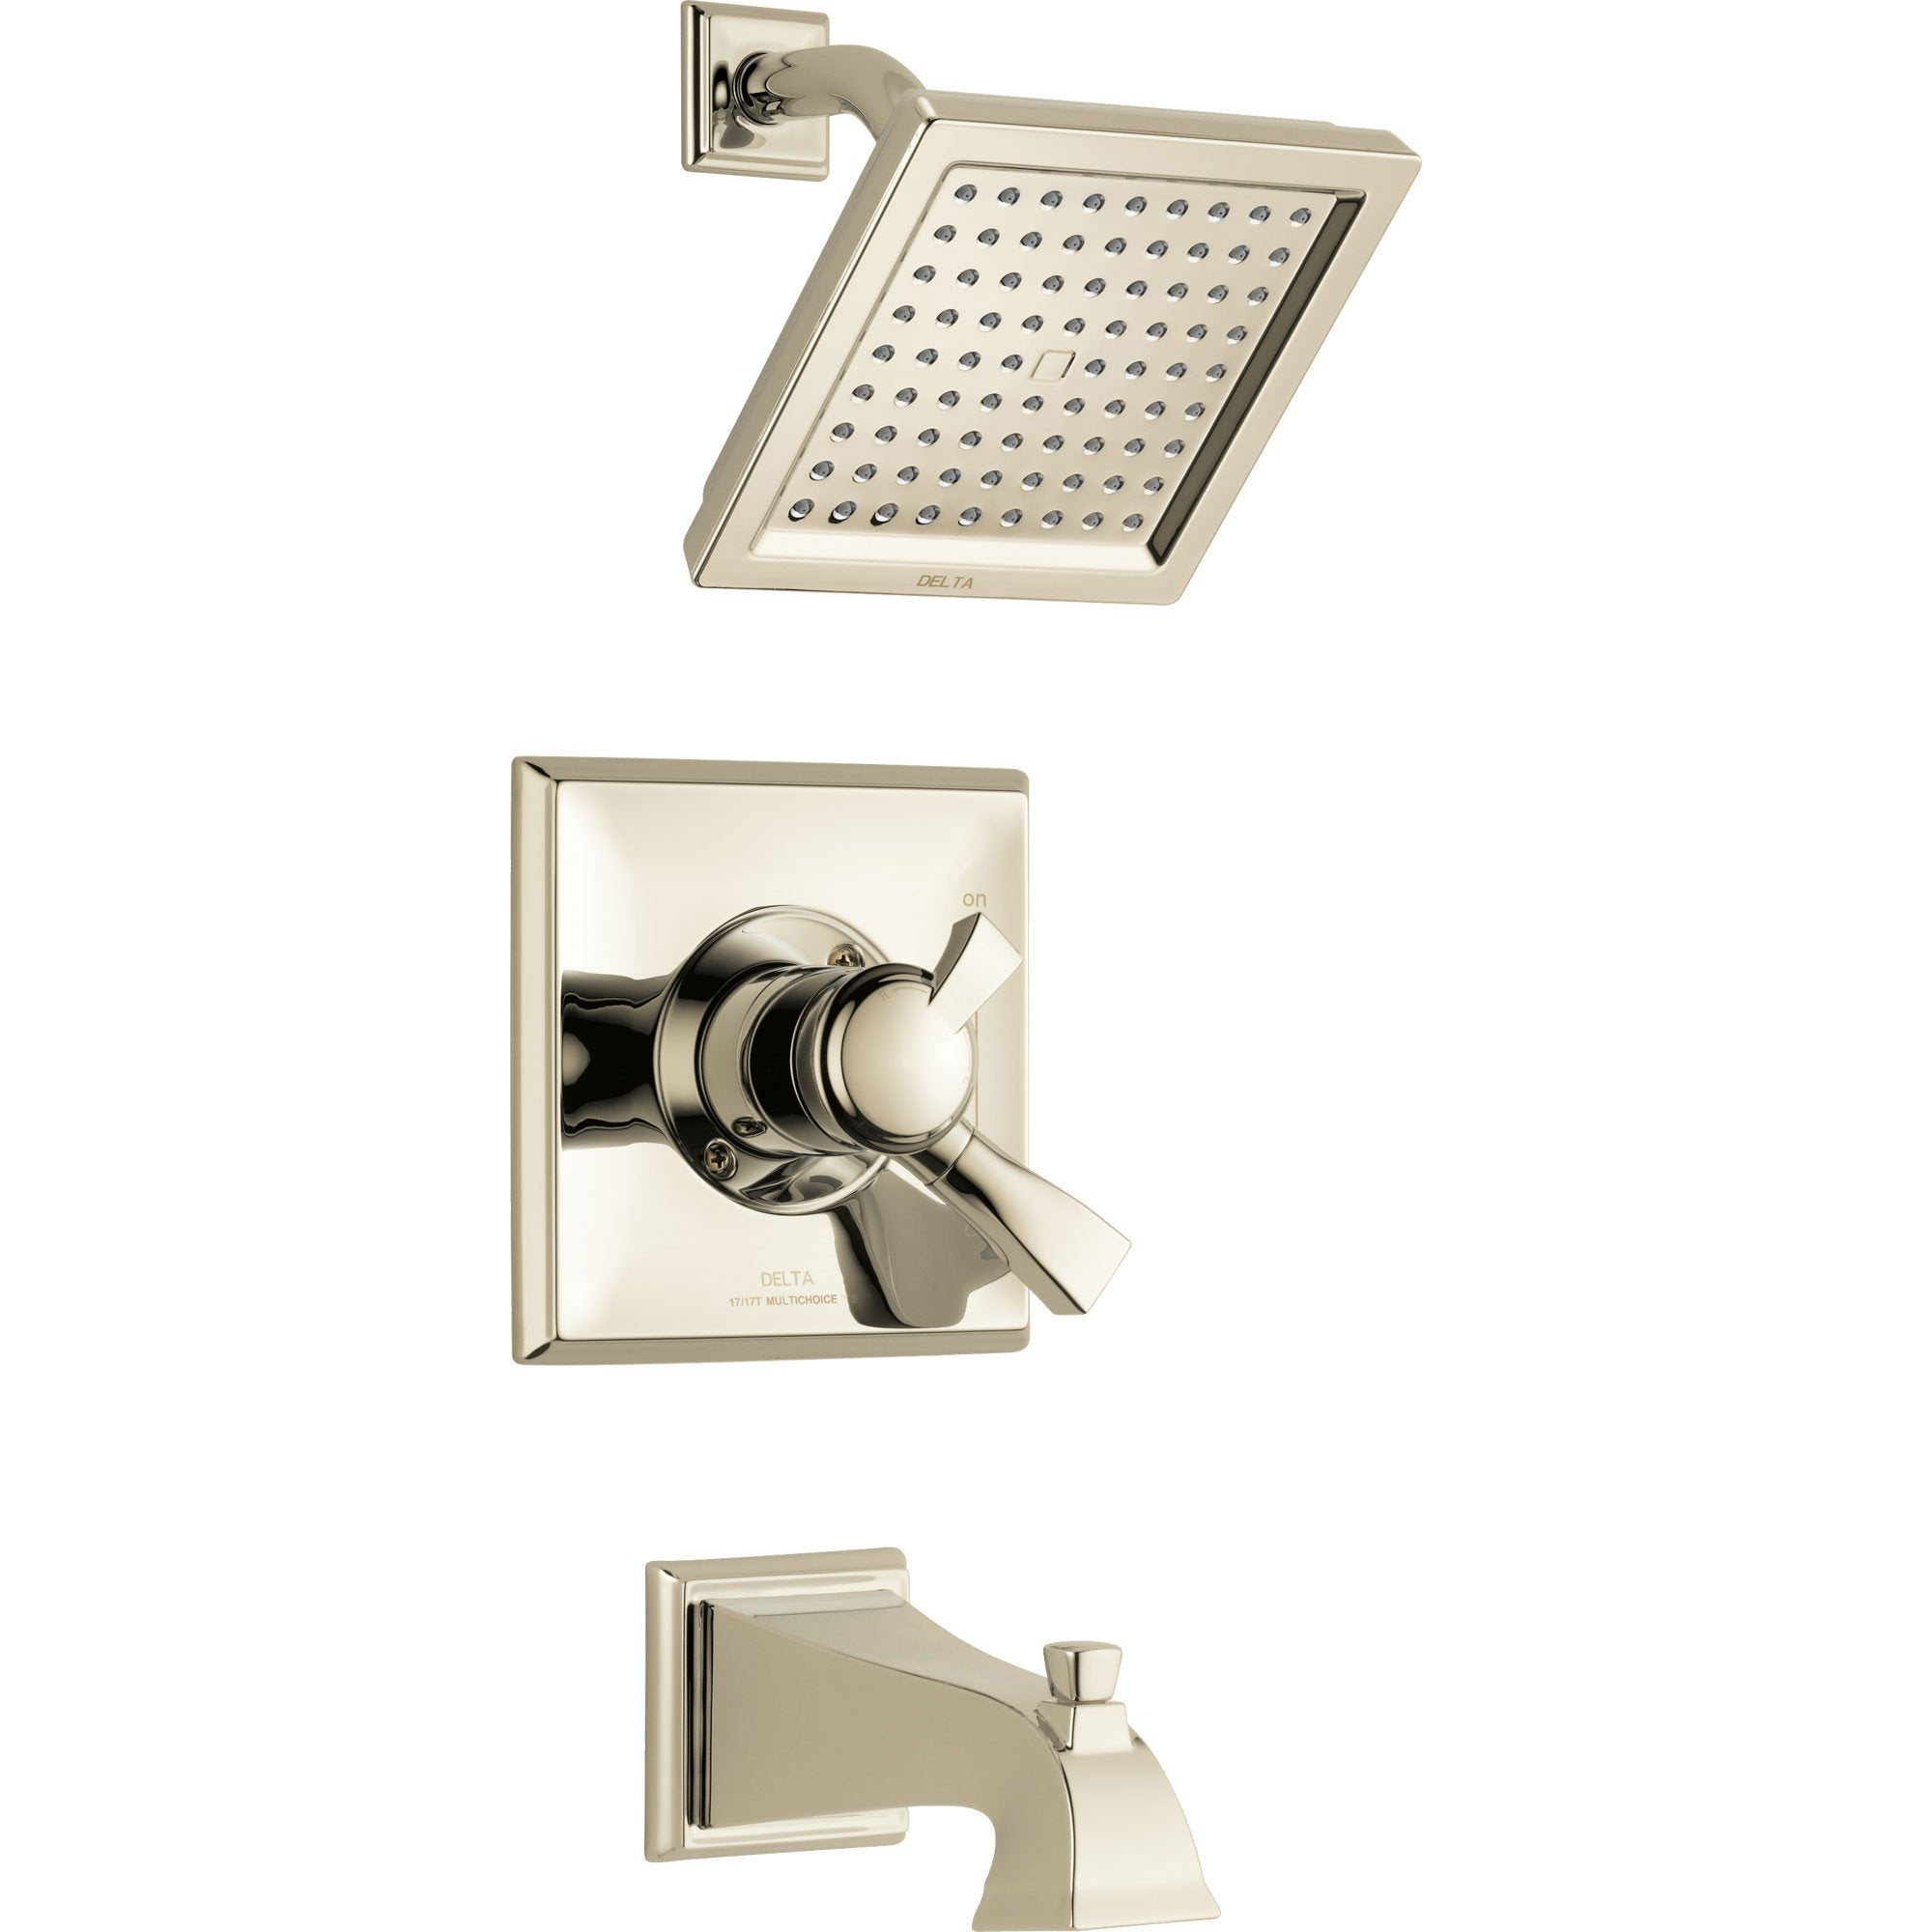 Delta Dryden Modern Square Polished Nickel Finish Tub and Shower Faucet Combination with Dual Temperature and Pressure Control INCLUDES Rough-in Valve D1128V